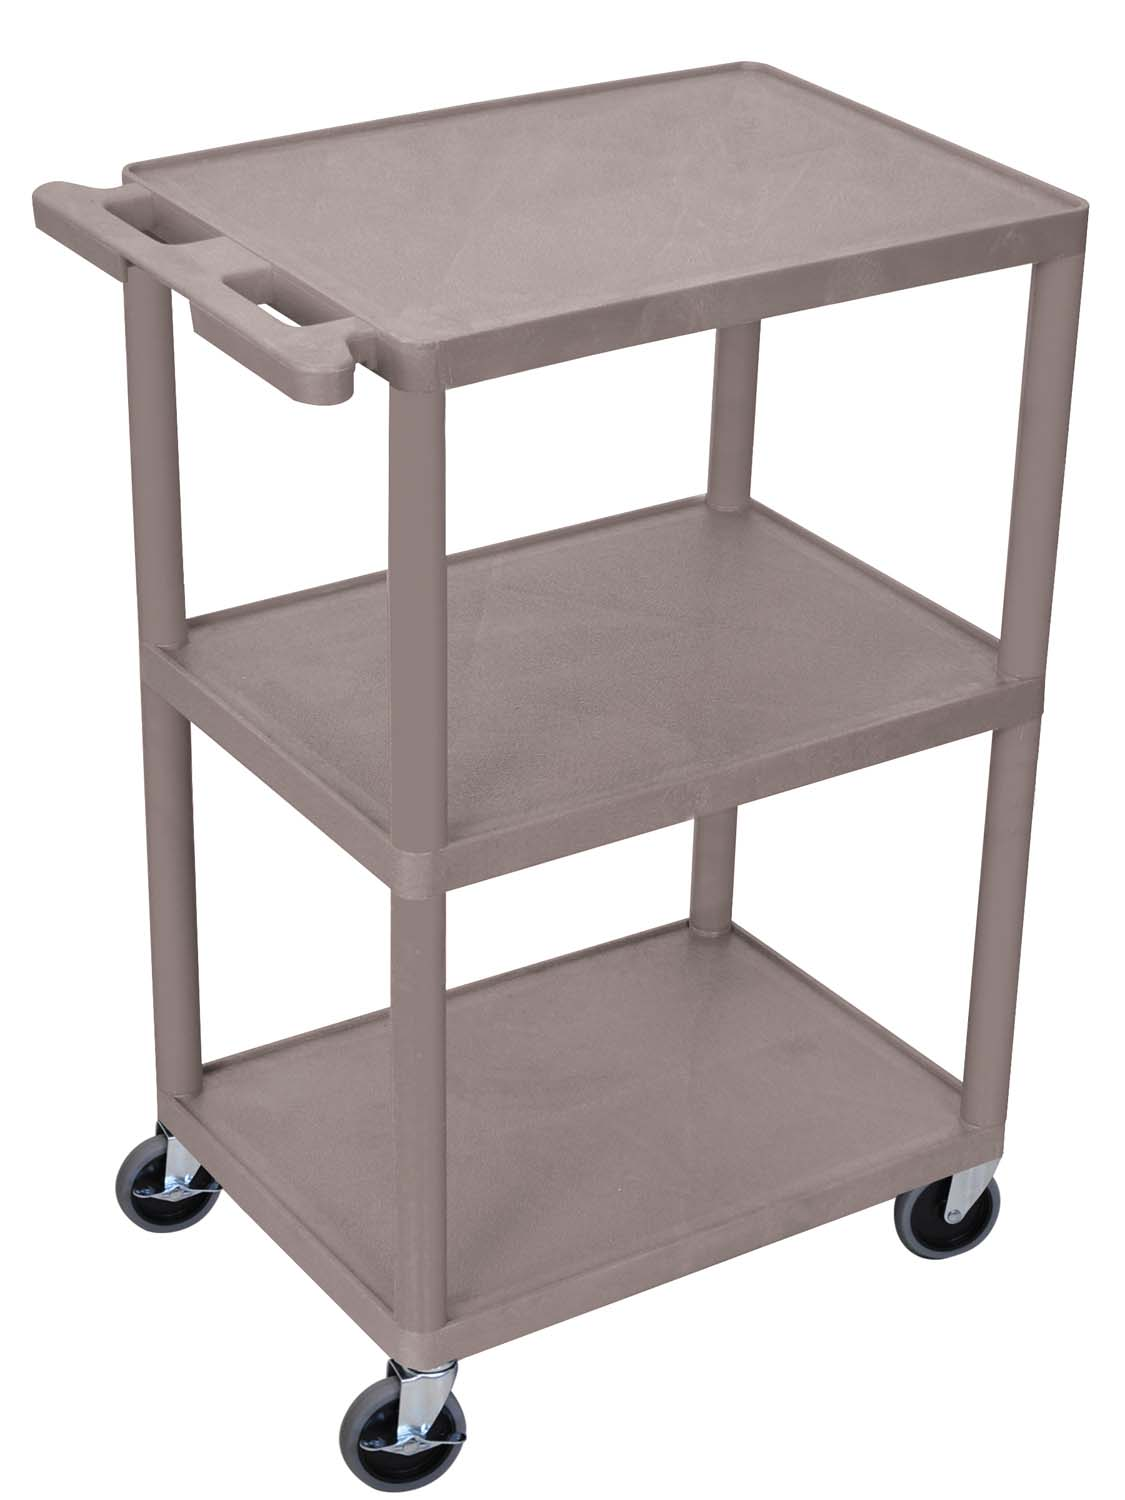 Offex 3-Shelf Utility Cart - 36 W x 18 D x 39 H - Gray